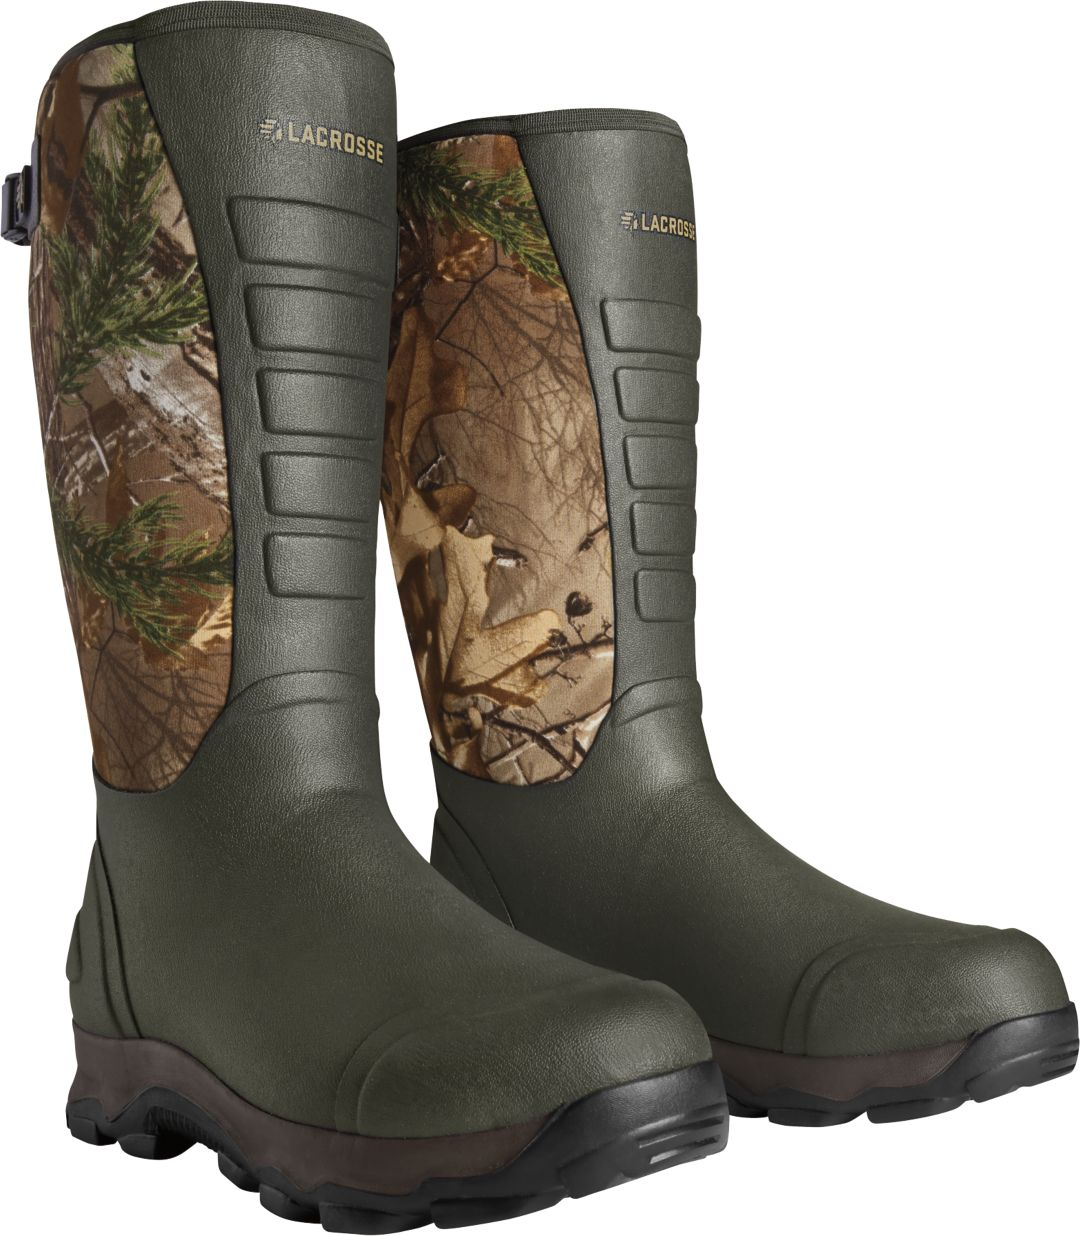 c6f80834461 LaCrosse Men's 4xAlpha 16'' Realtree Xtra 7.0mm Rubber Hunting Boots